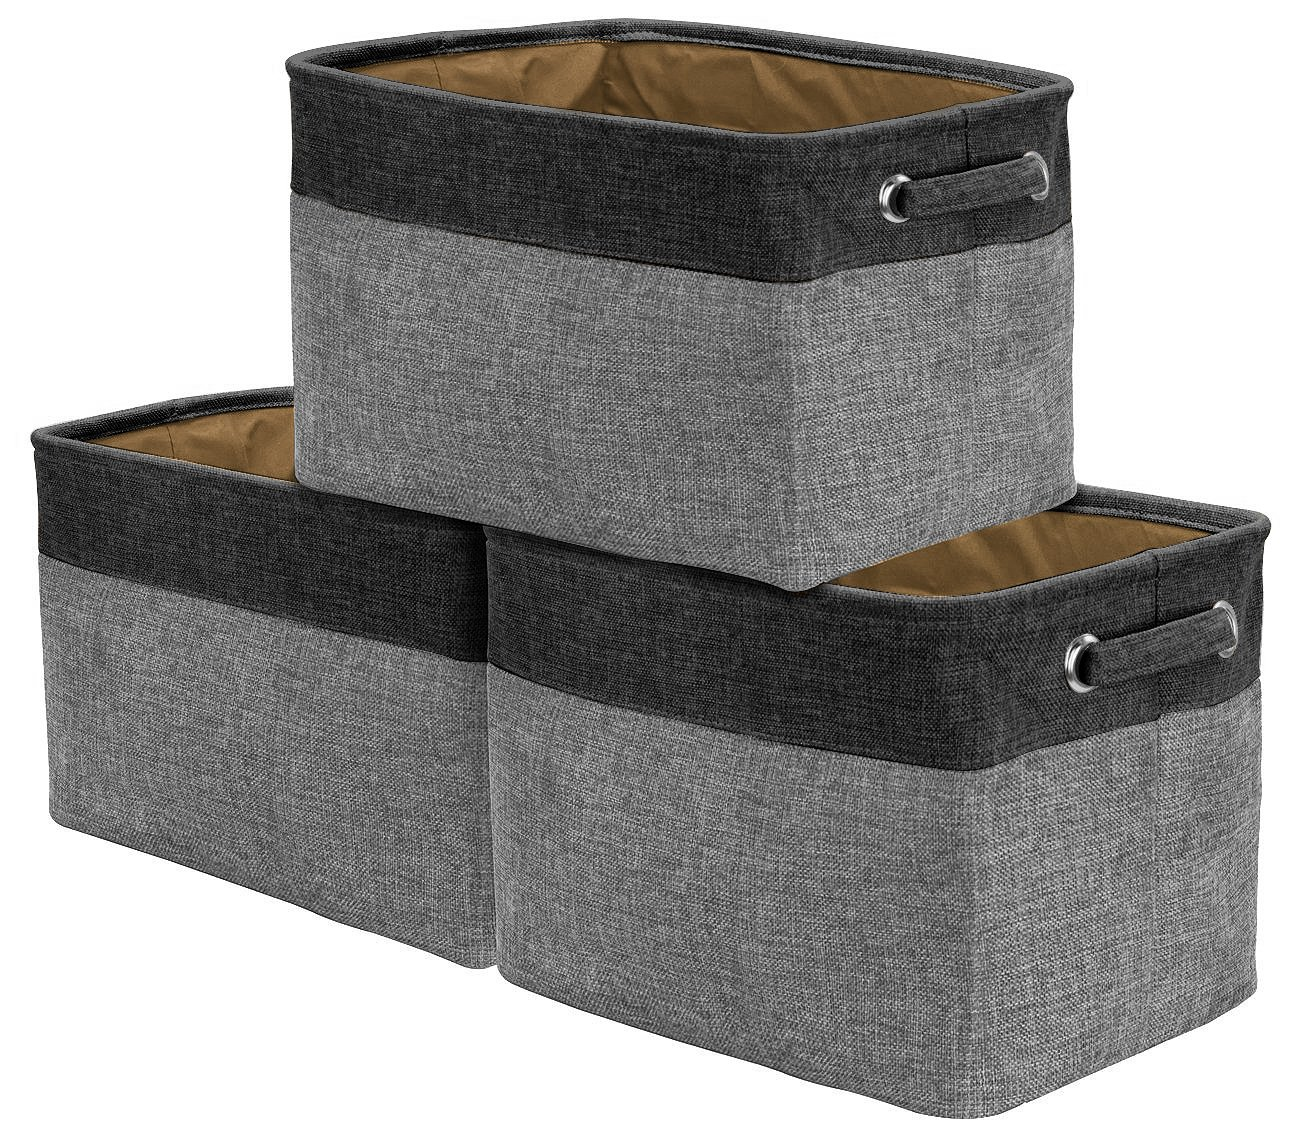 Sorbus Storage Large Basket Set [3-Pack] - 15 L x 10 W x 9 H - Big Rectangular Fabric Collapsible Organizer Bin Carry Handles Linens, Towels, Toys, Clothes, Kids Room, Nursery (Black/Grey)